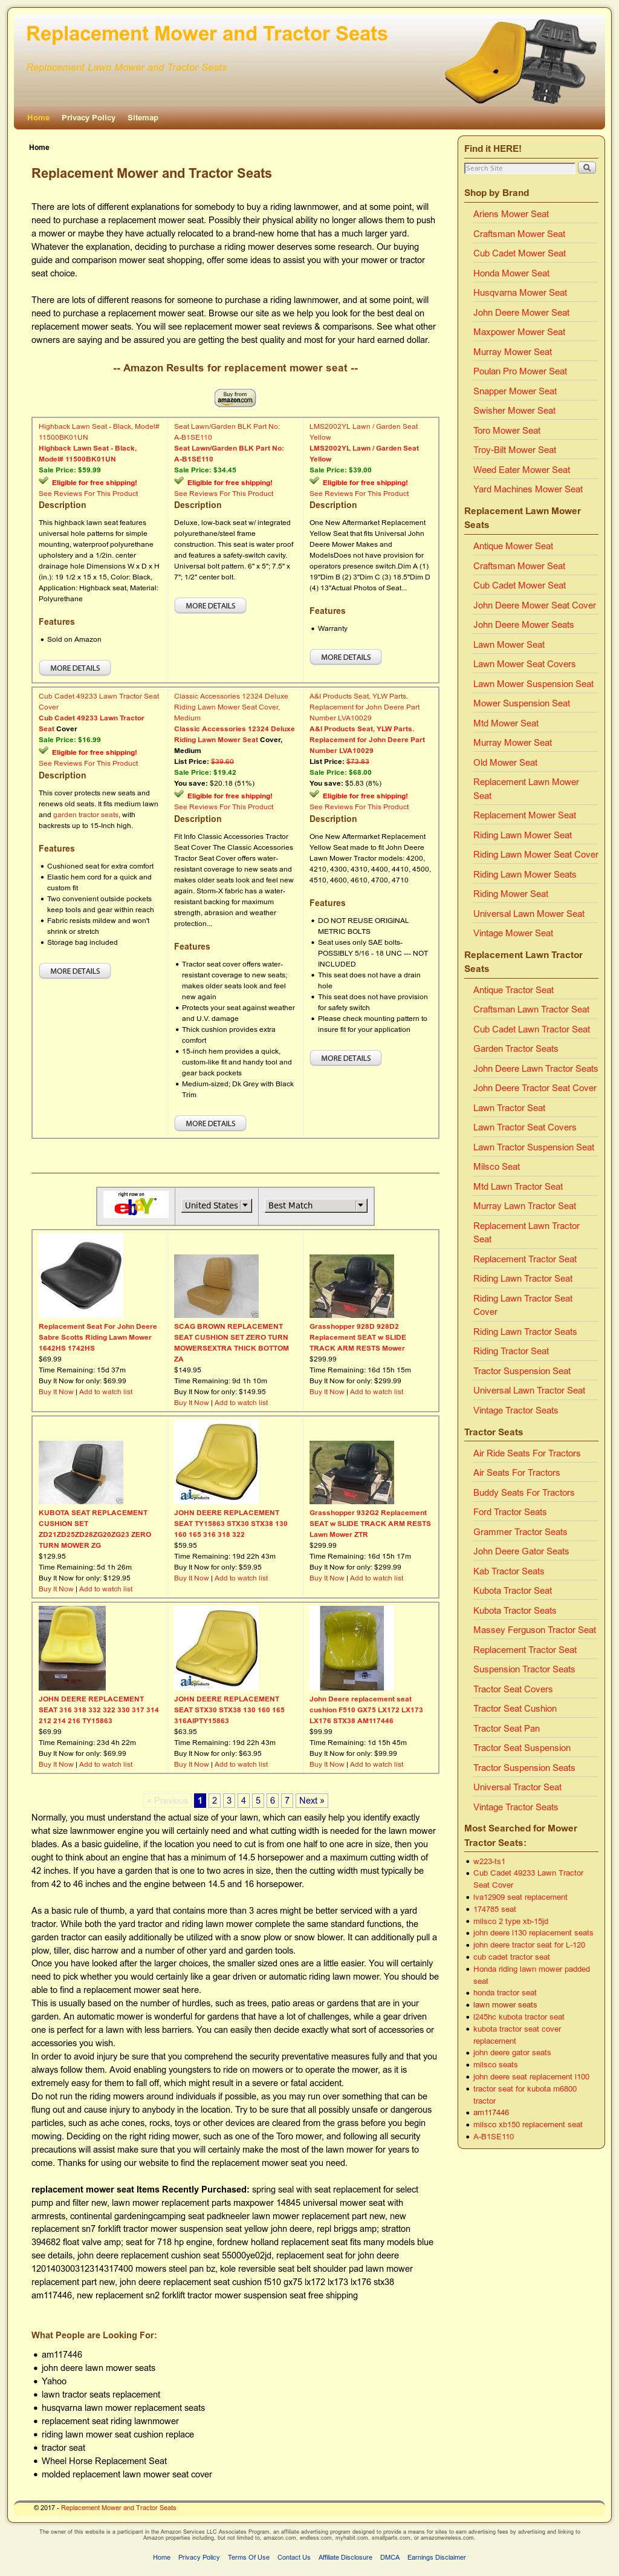 Replacement Mower And Tractor Seats Competitors, Revenue and